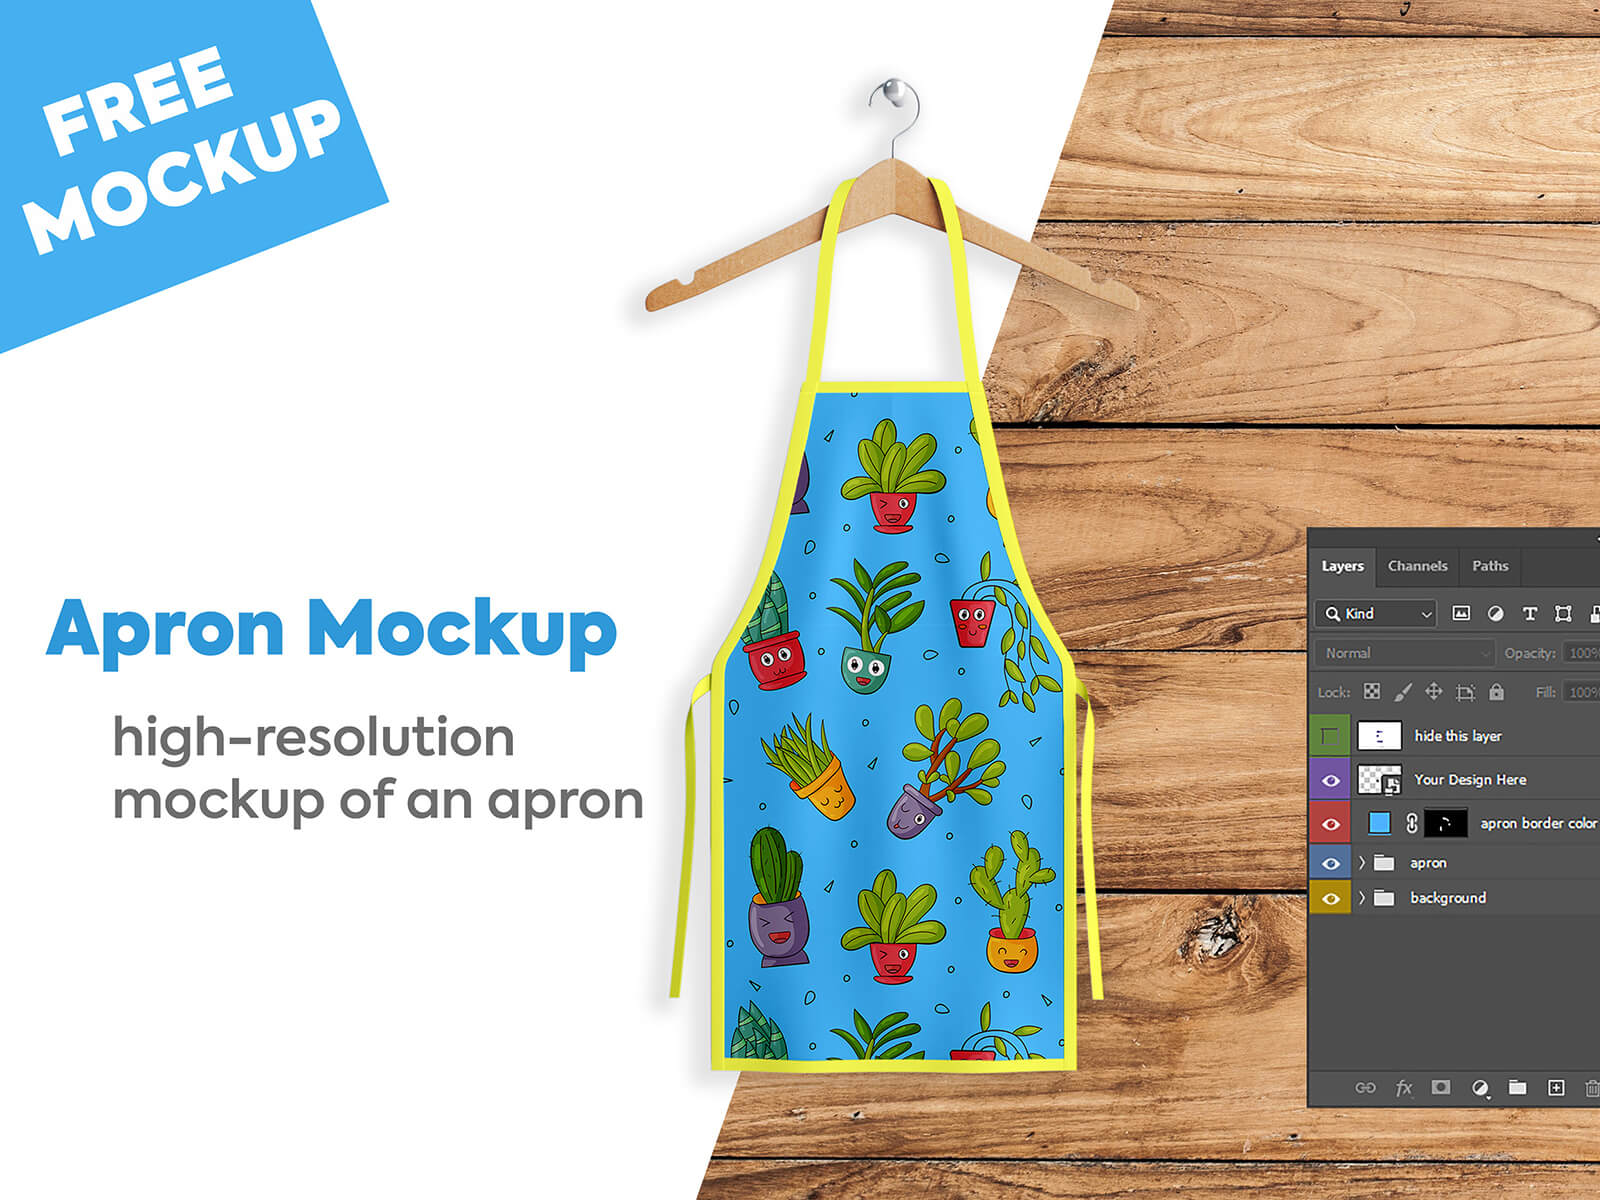 Apron Mockup PSD Free Download cover image